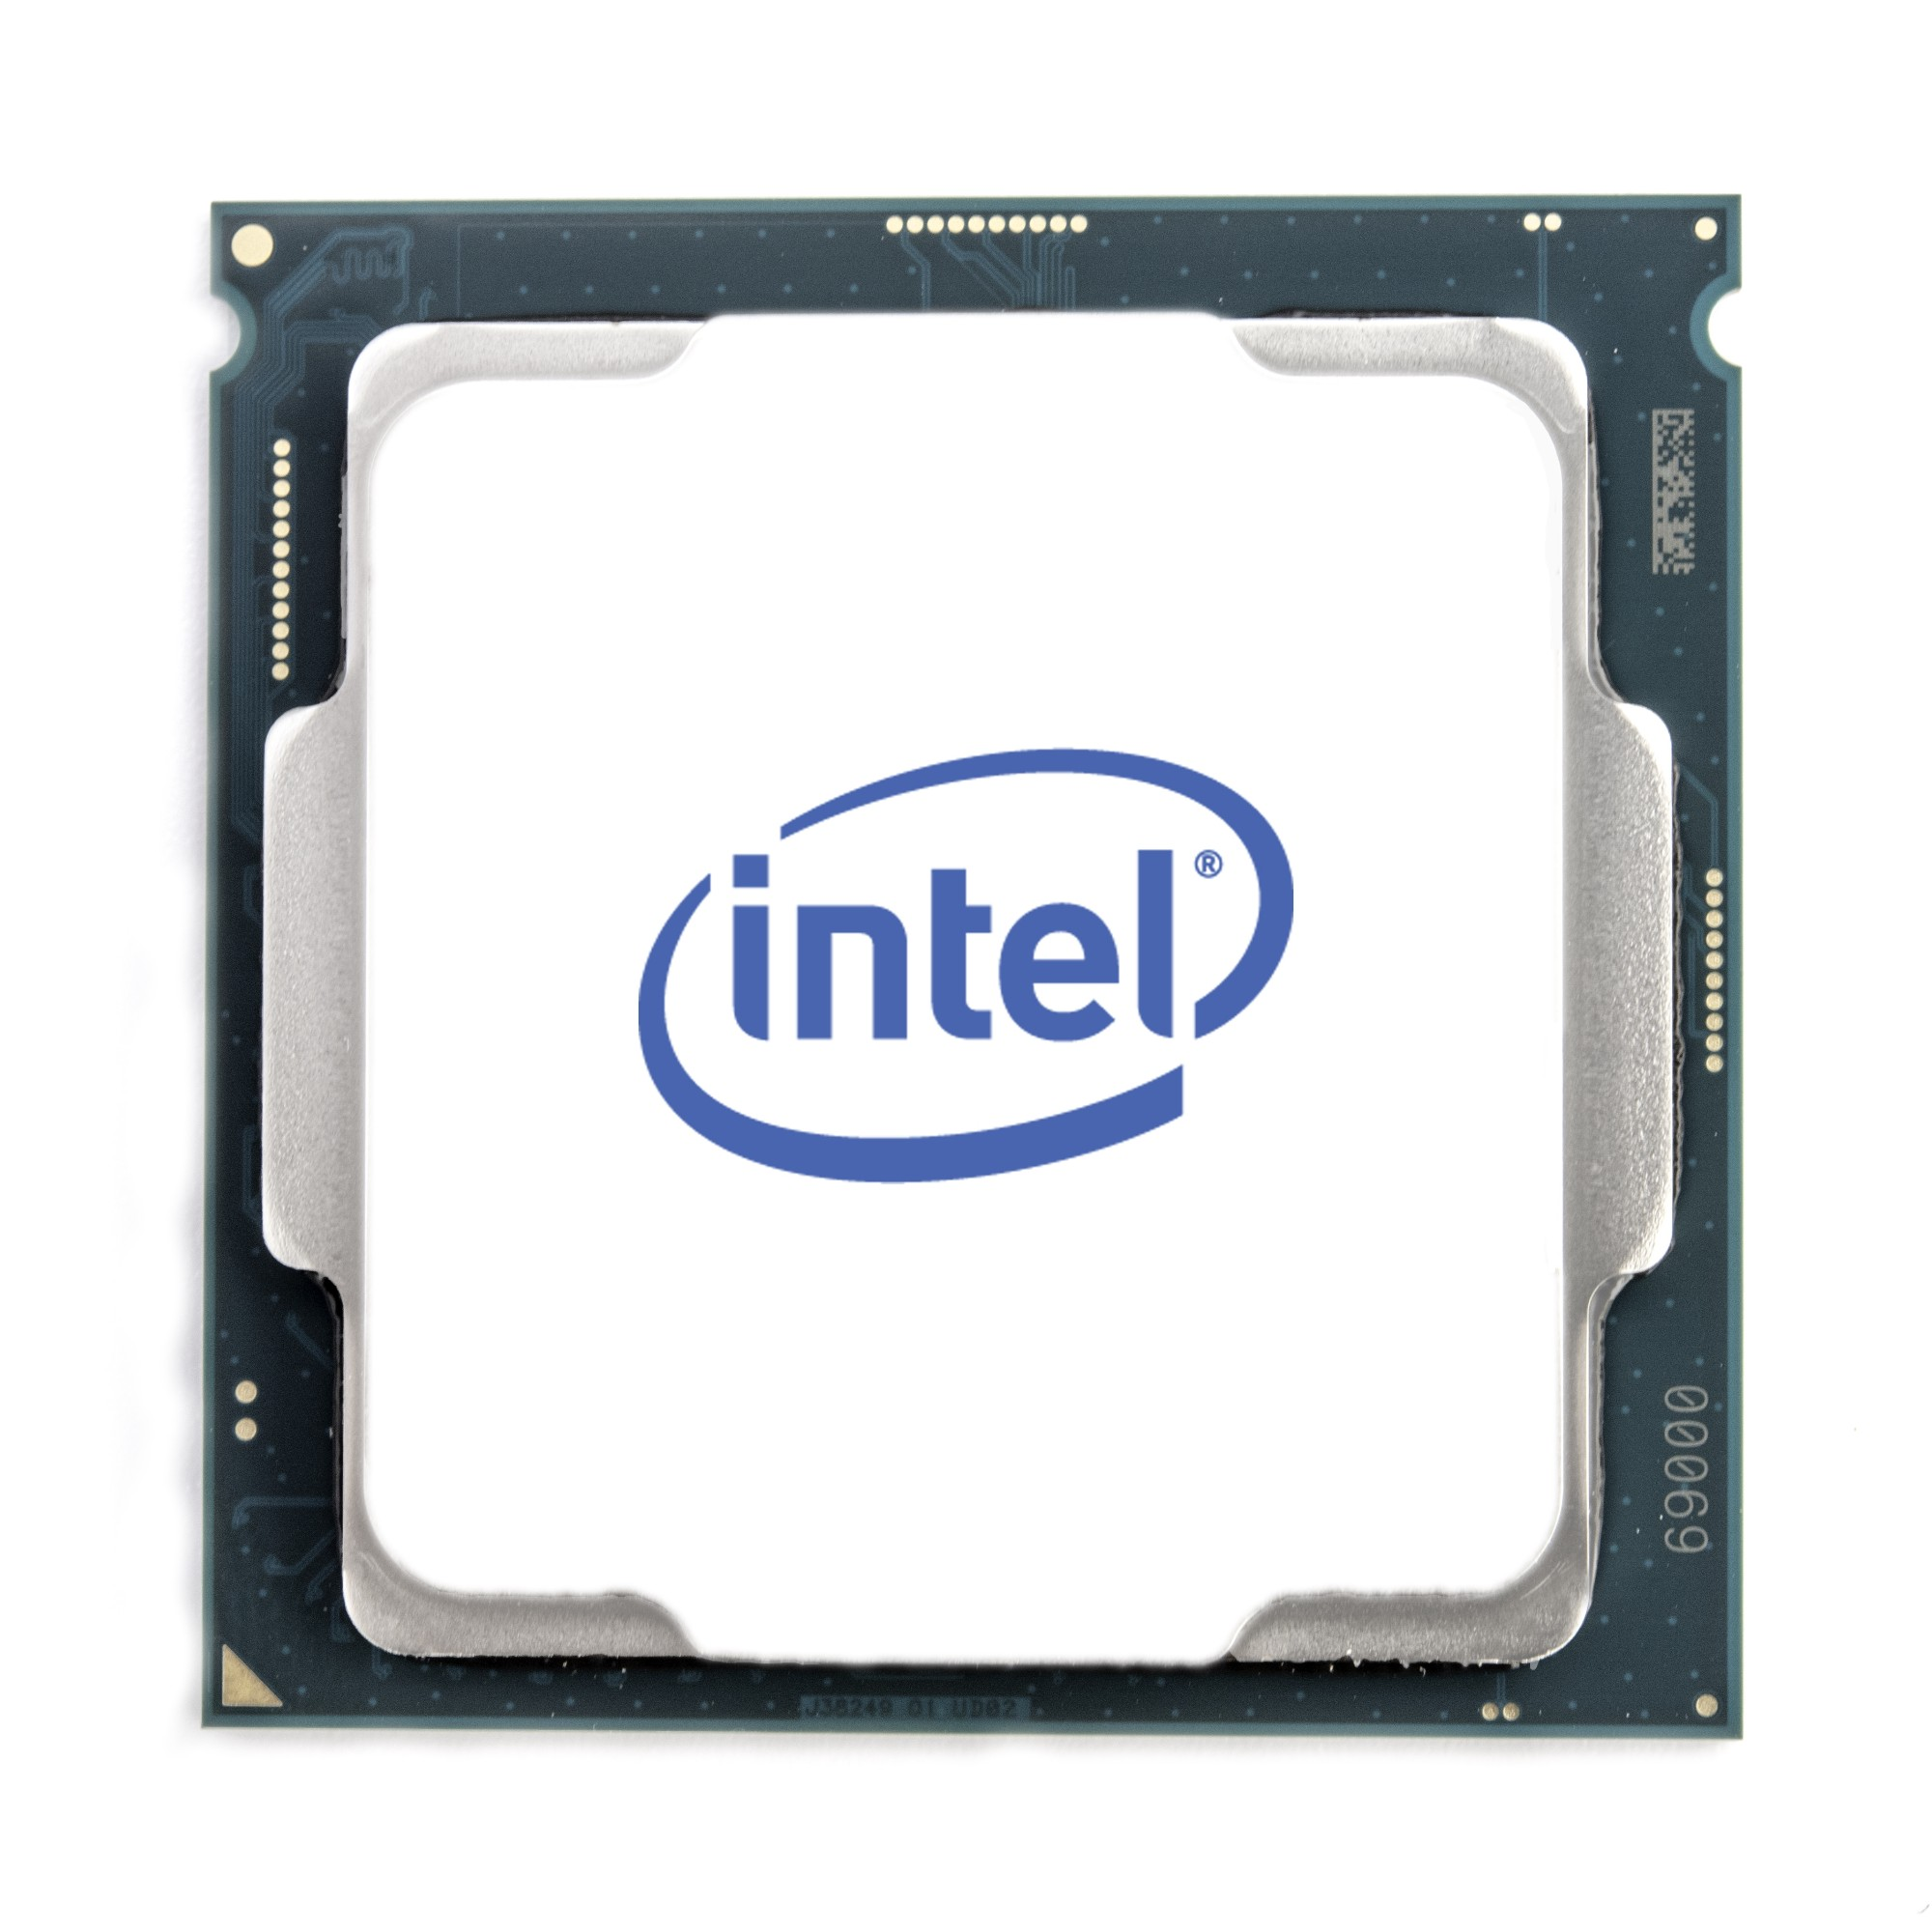 Intel Core i5-10500 processor 3.1 GHz 12 MB Smart Cache